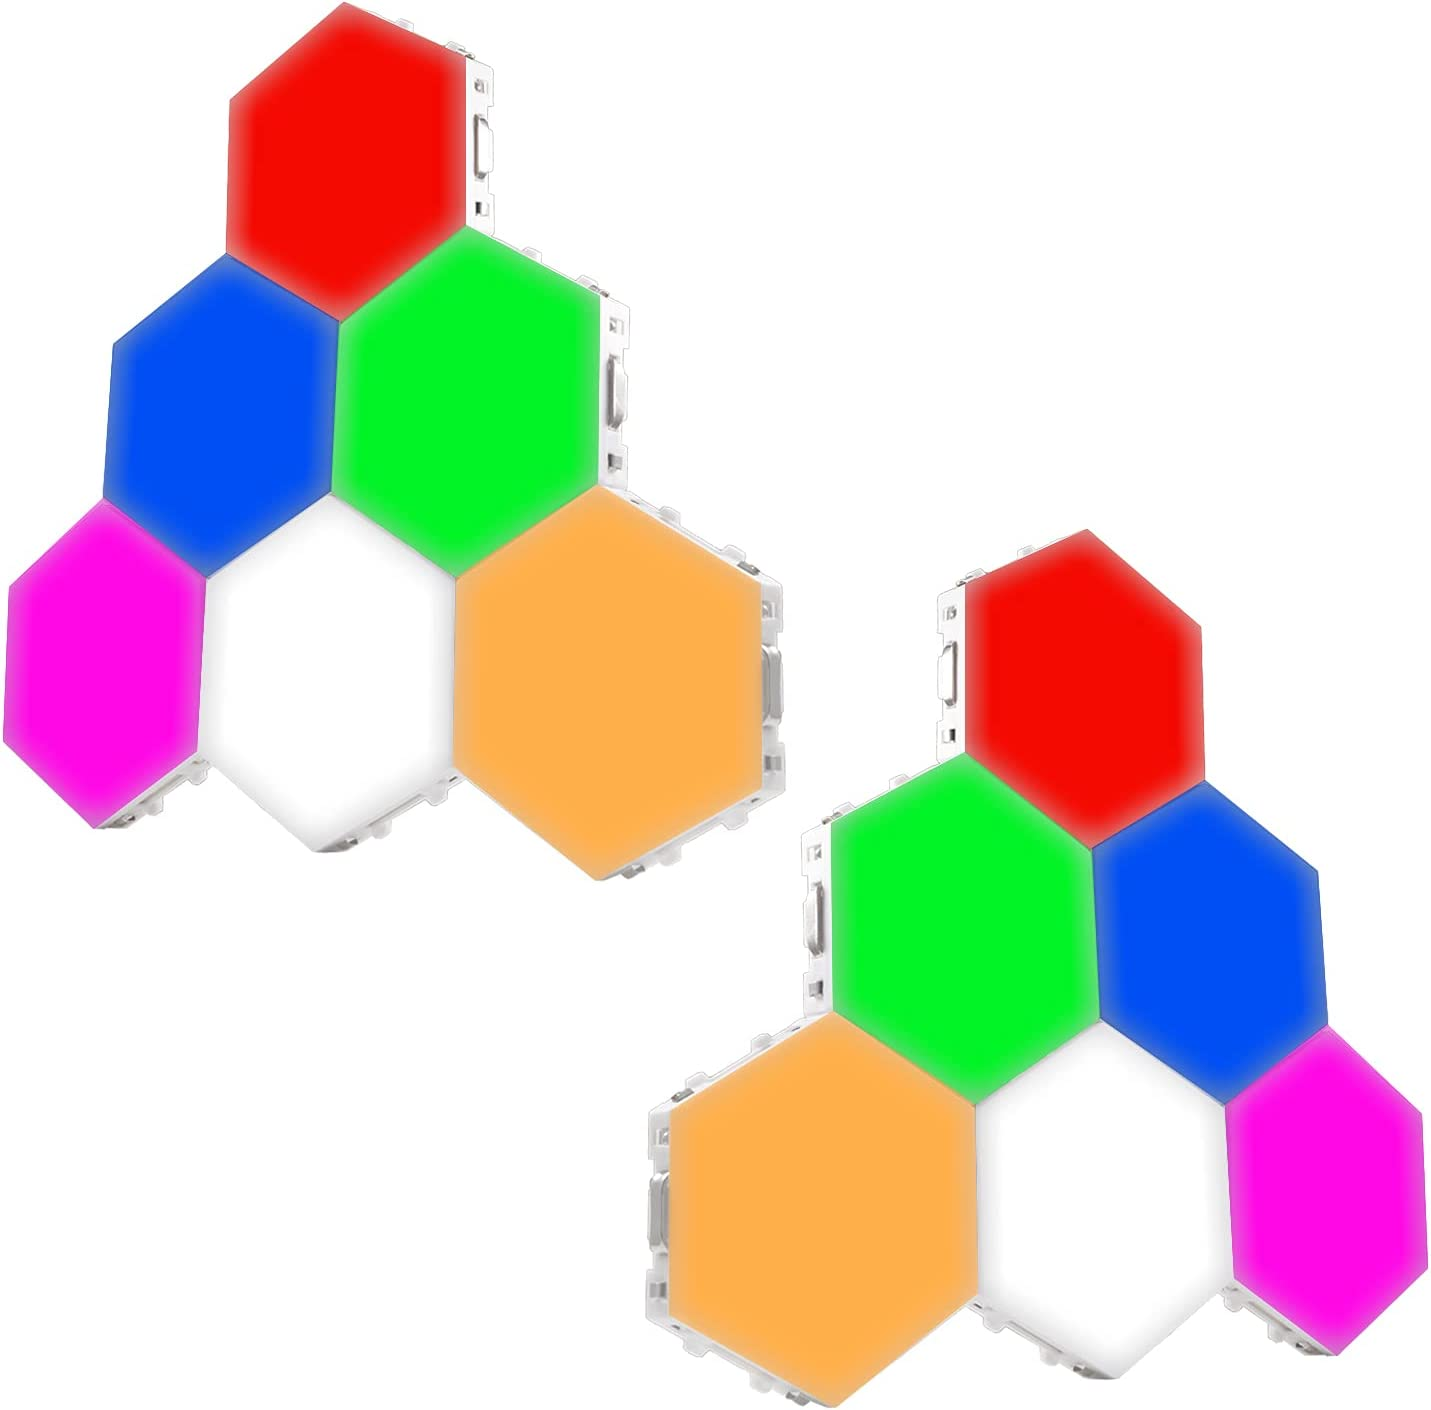 LED Hexagon Lights RGB - Bright Colorful LED lamp Modular Touch Sensitive Lighting Hexagon Wall LED Light Kit, 12 Pack, Changing Colors, Touchpad Switch, Magnetic & Reusable - Clearon